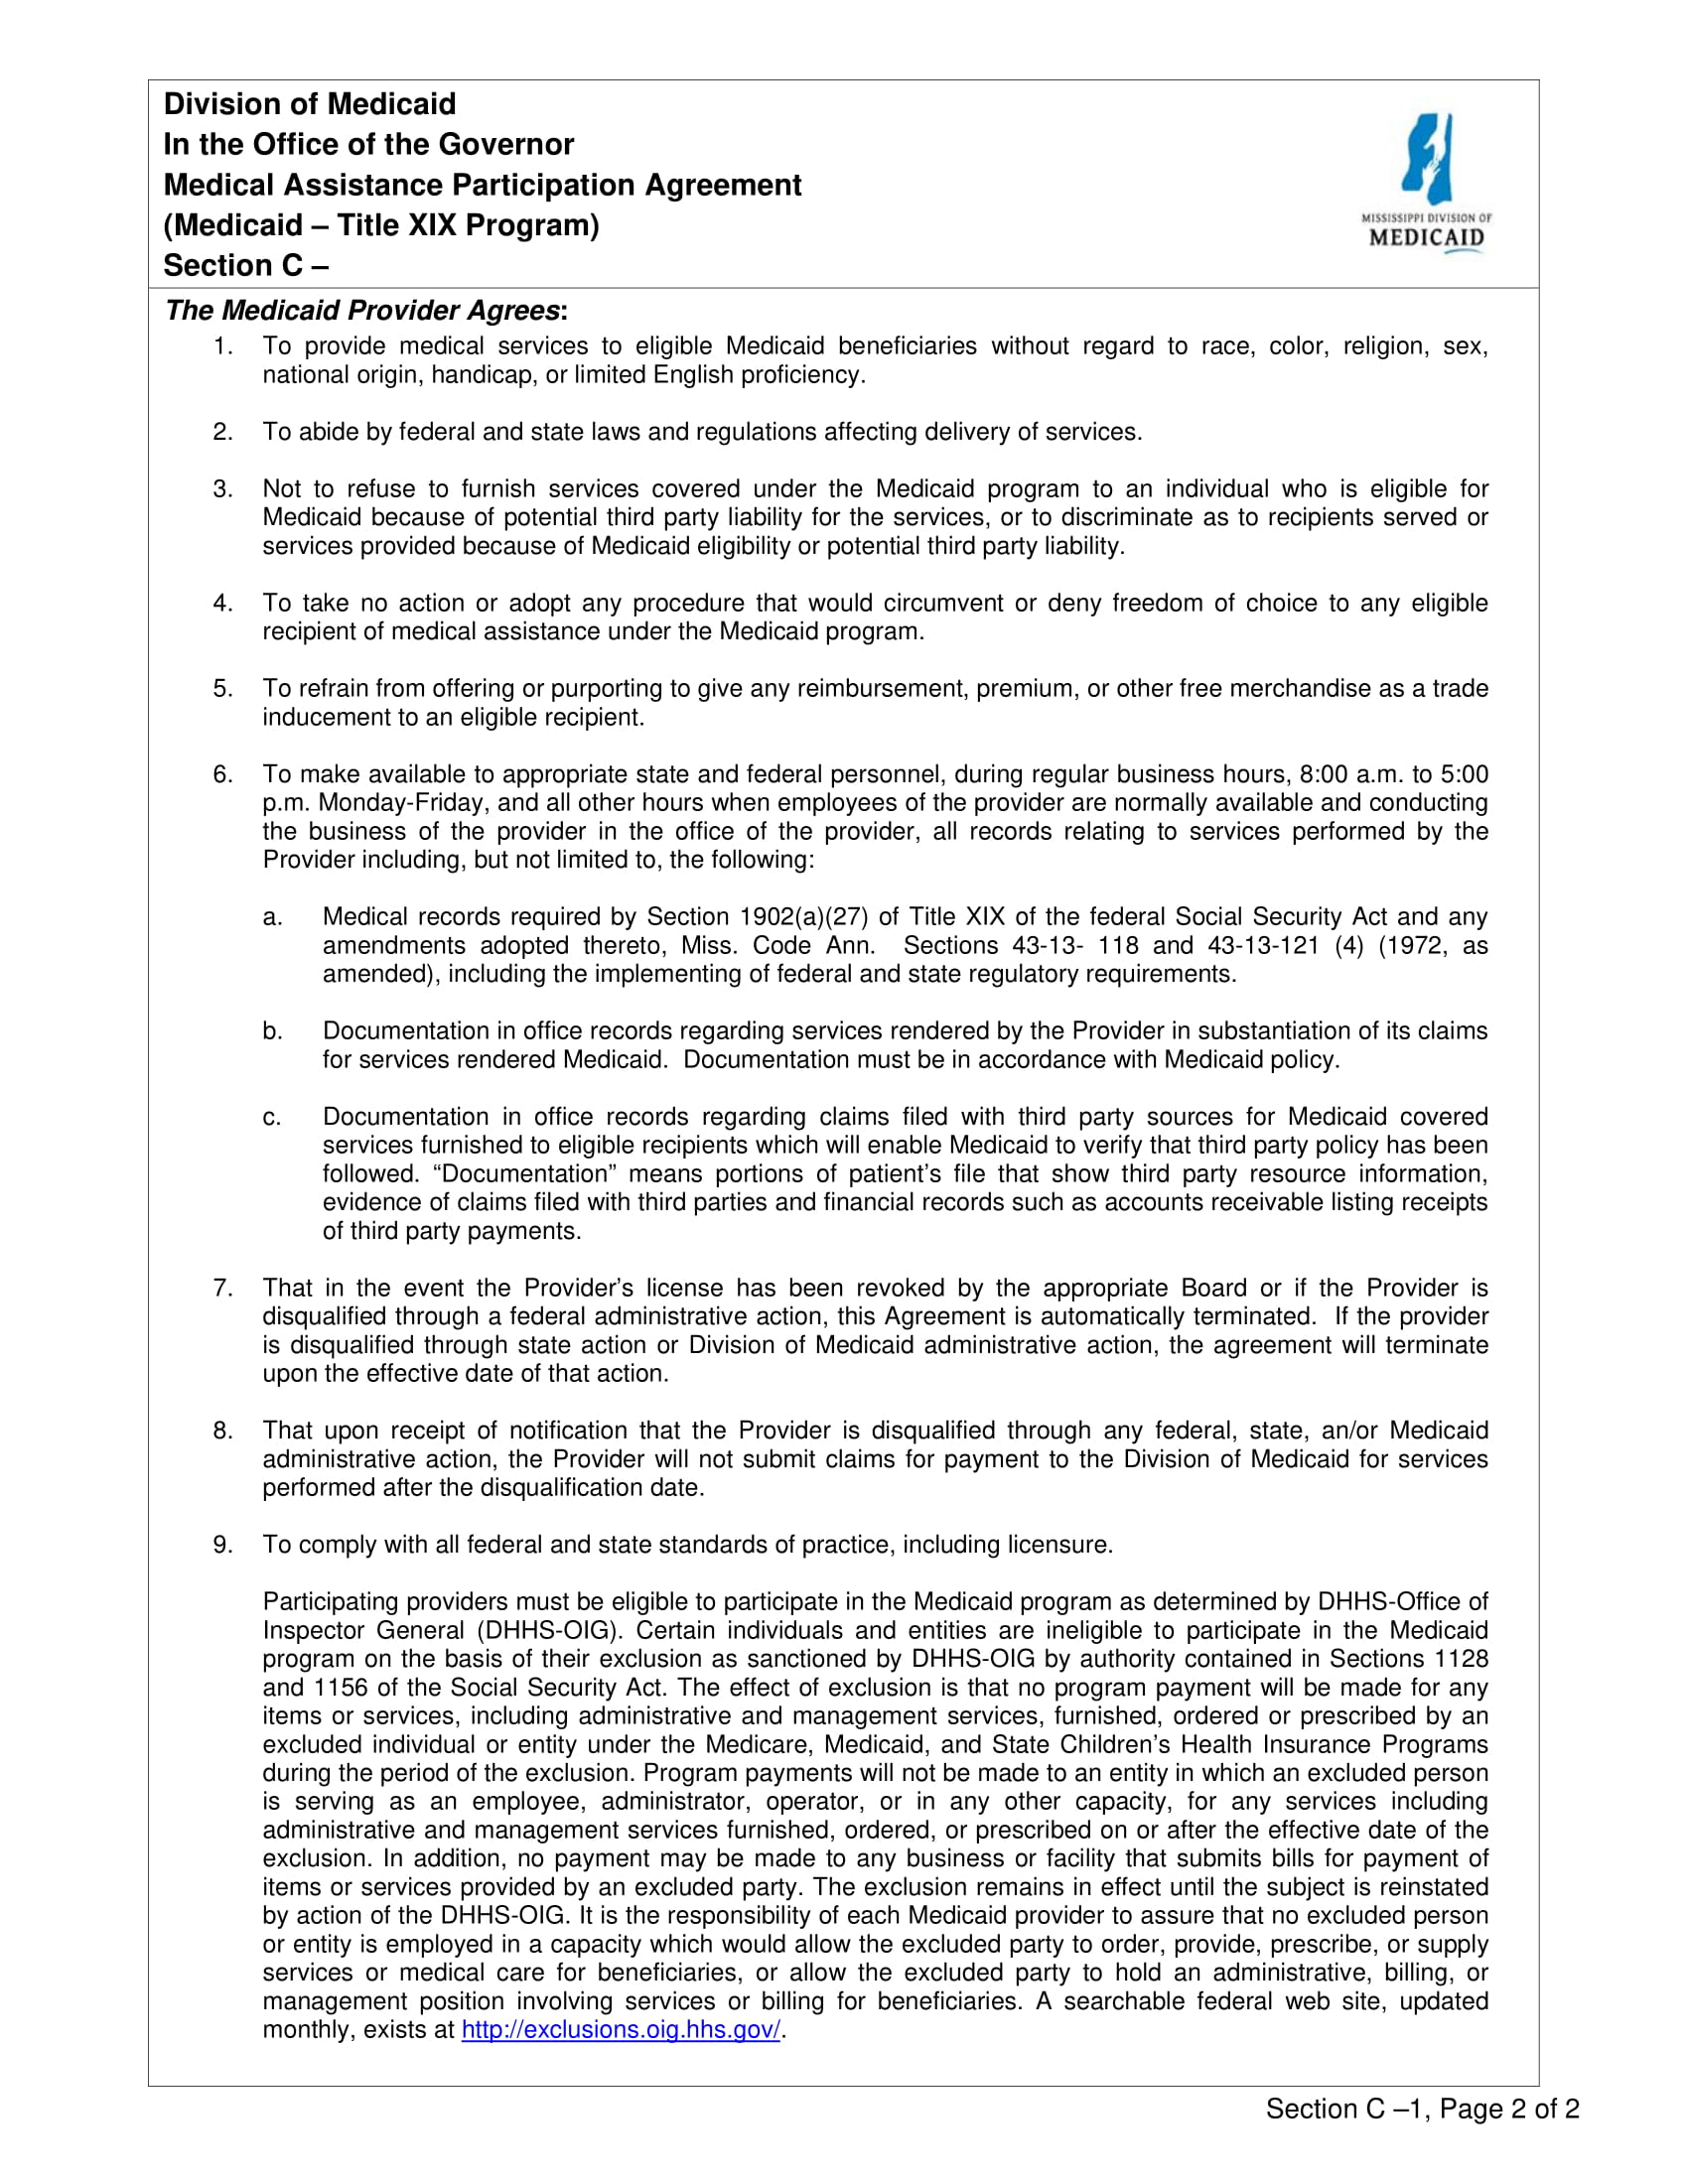 medicaid assistance participation agreement contract form 1